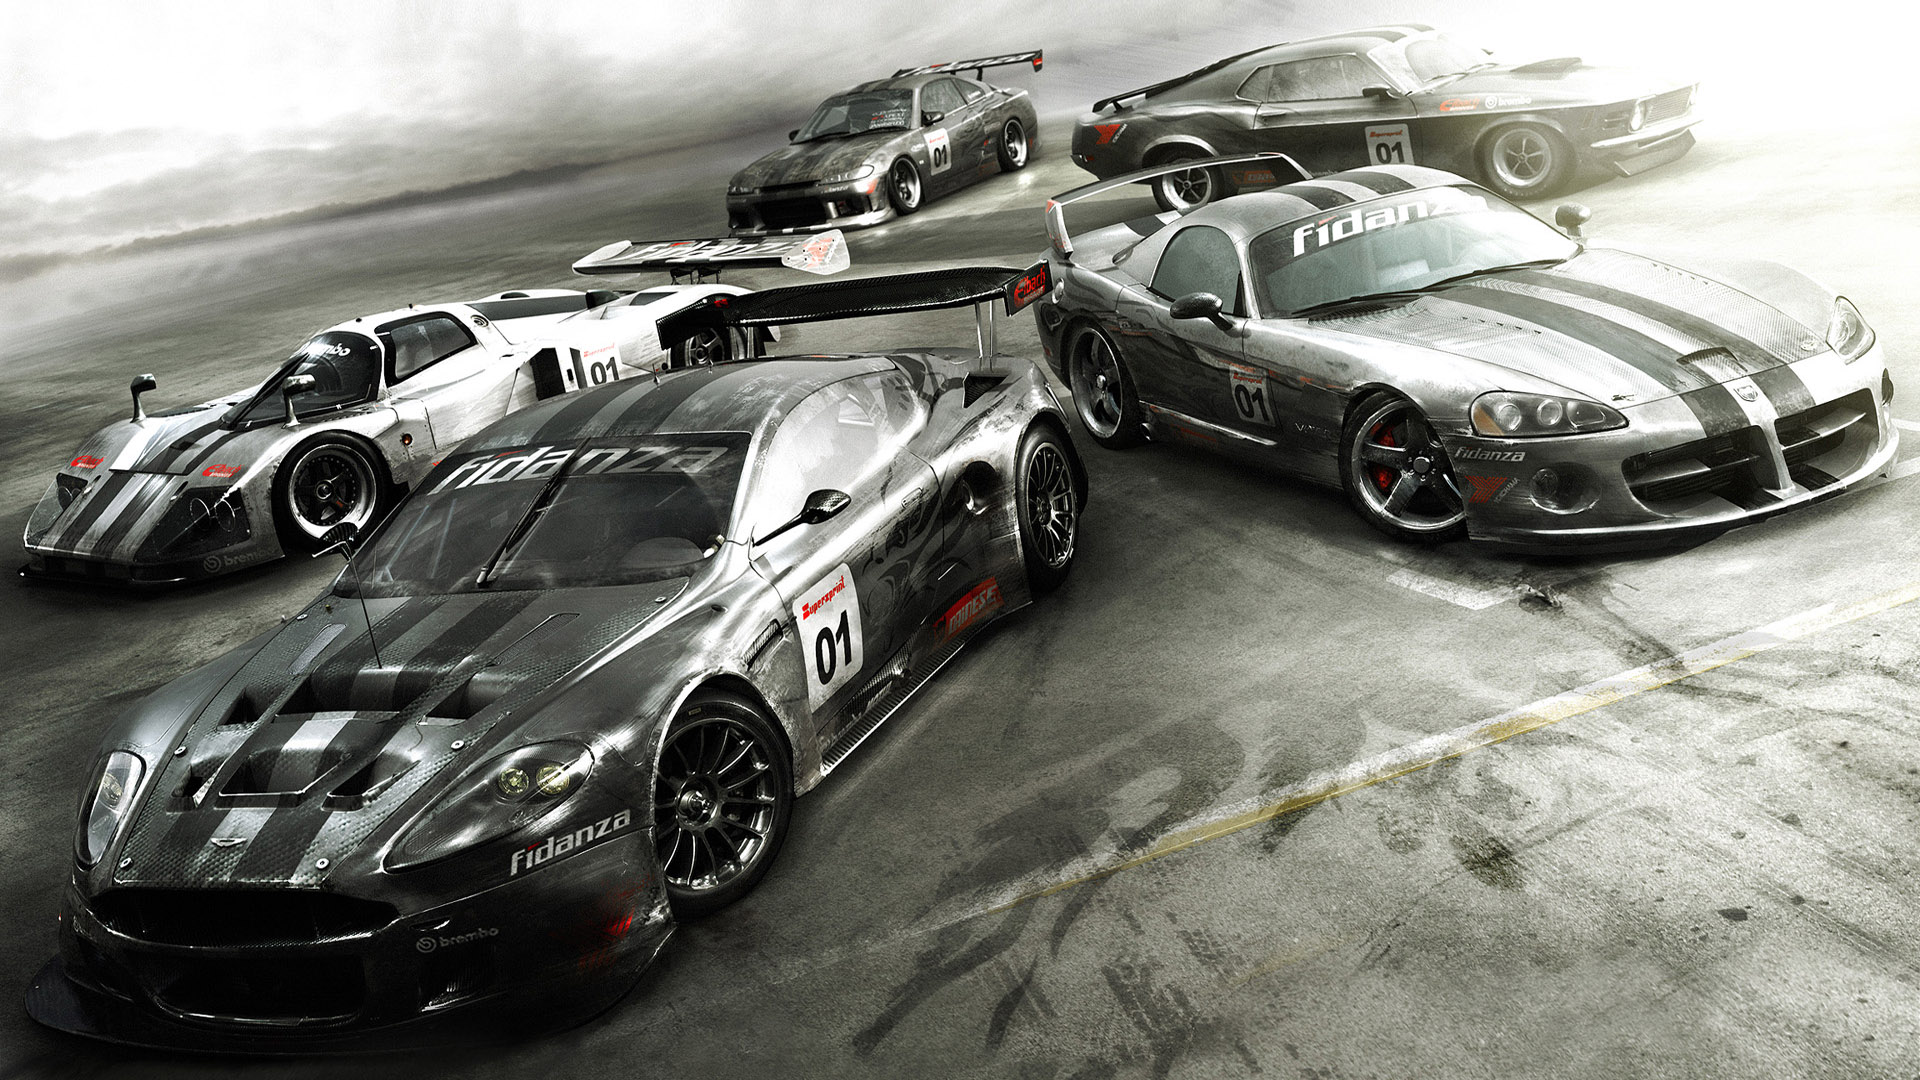 1920x1080 Gt Cars Desktop Pc And Mac Wallpaper